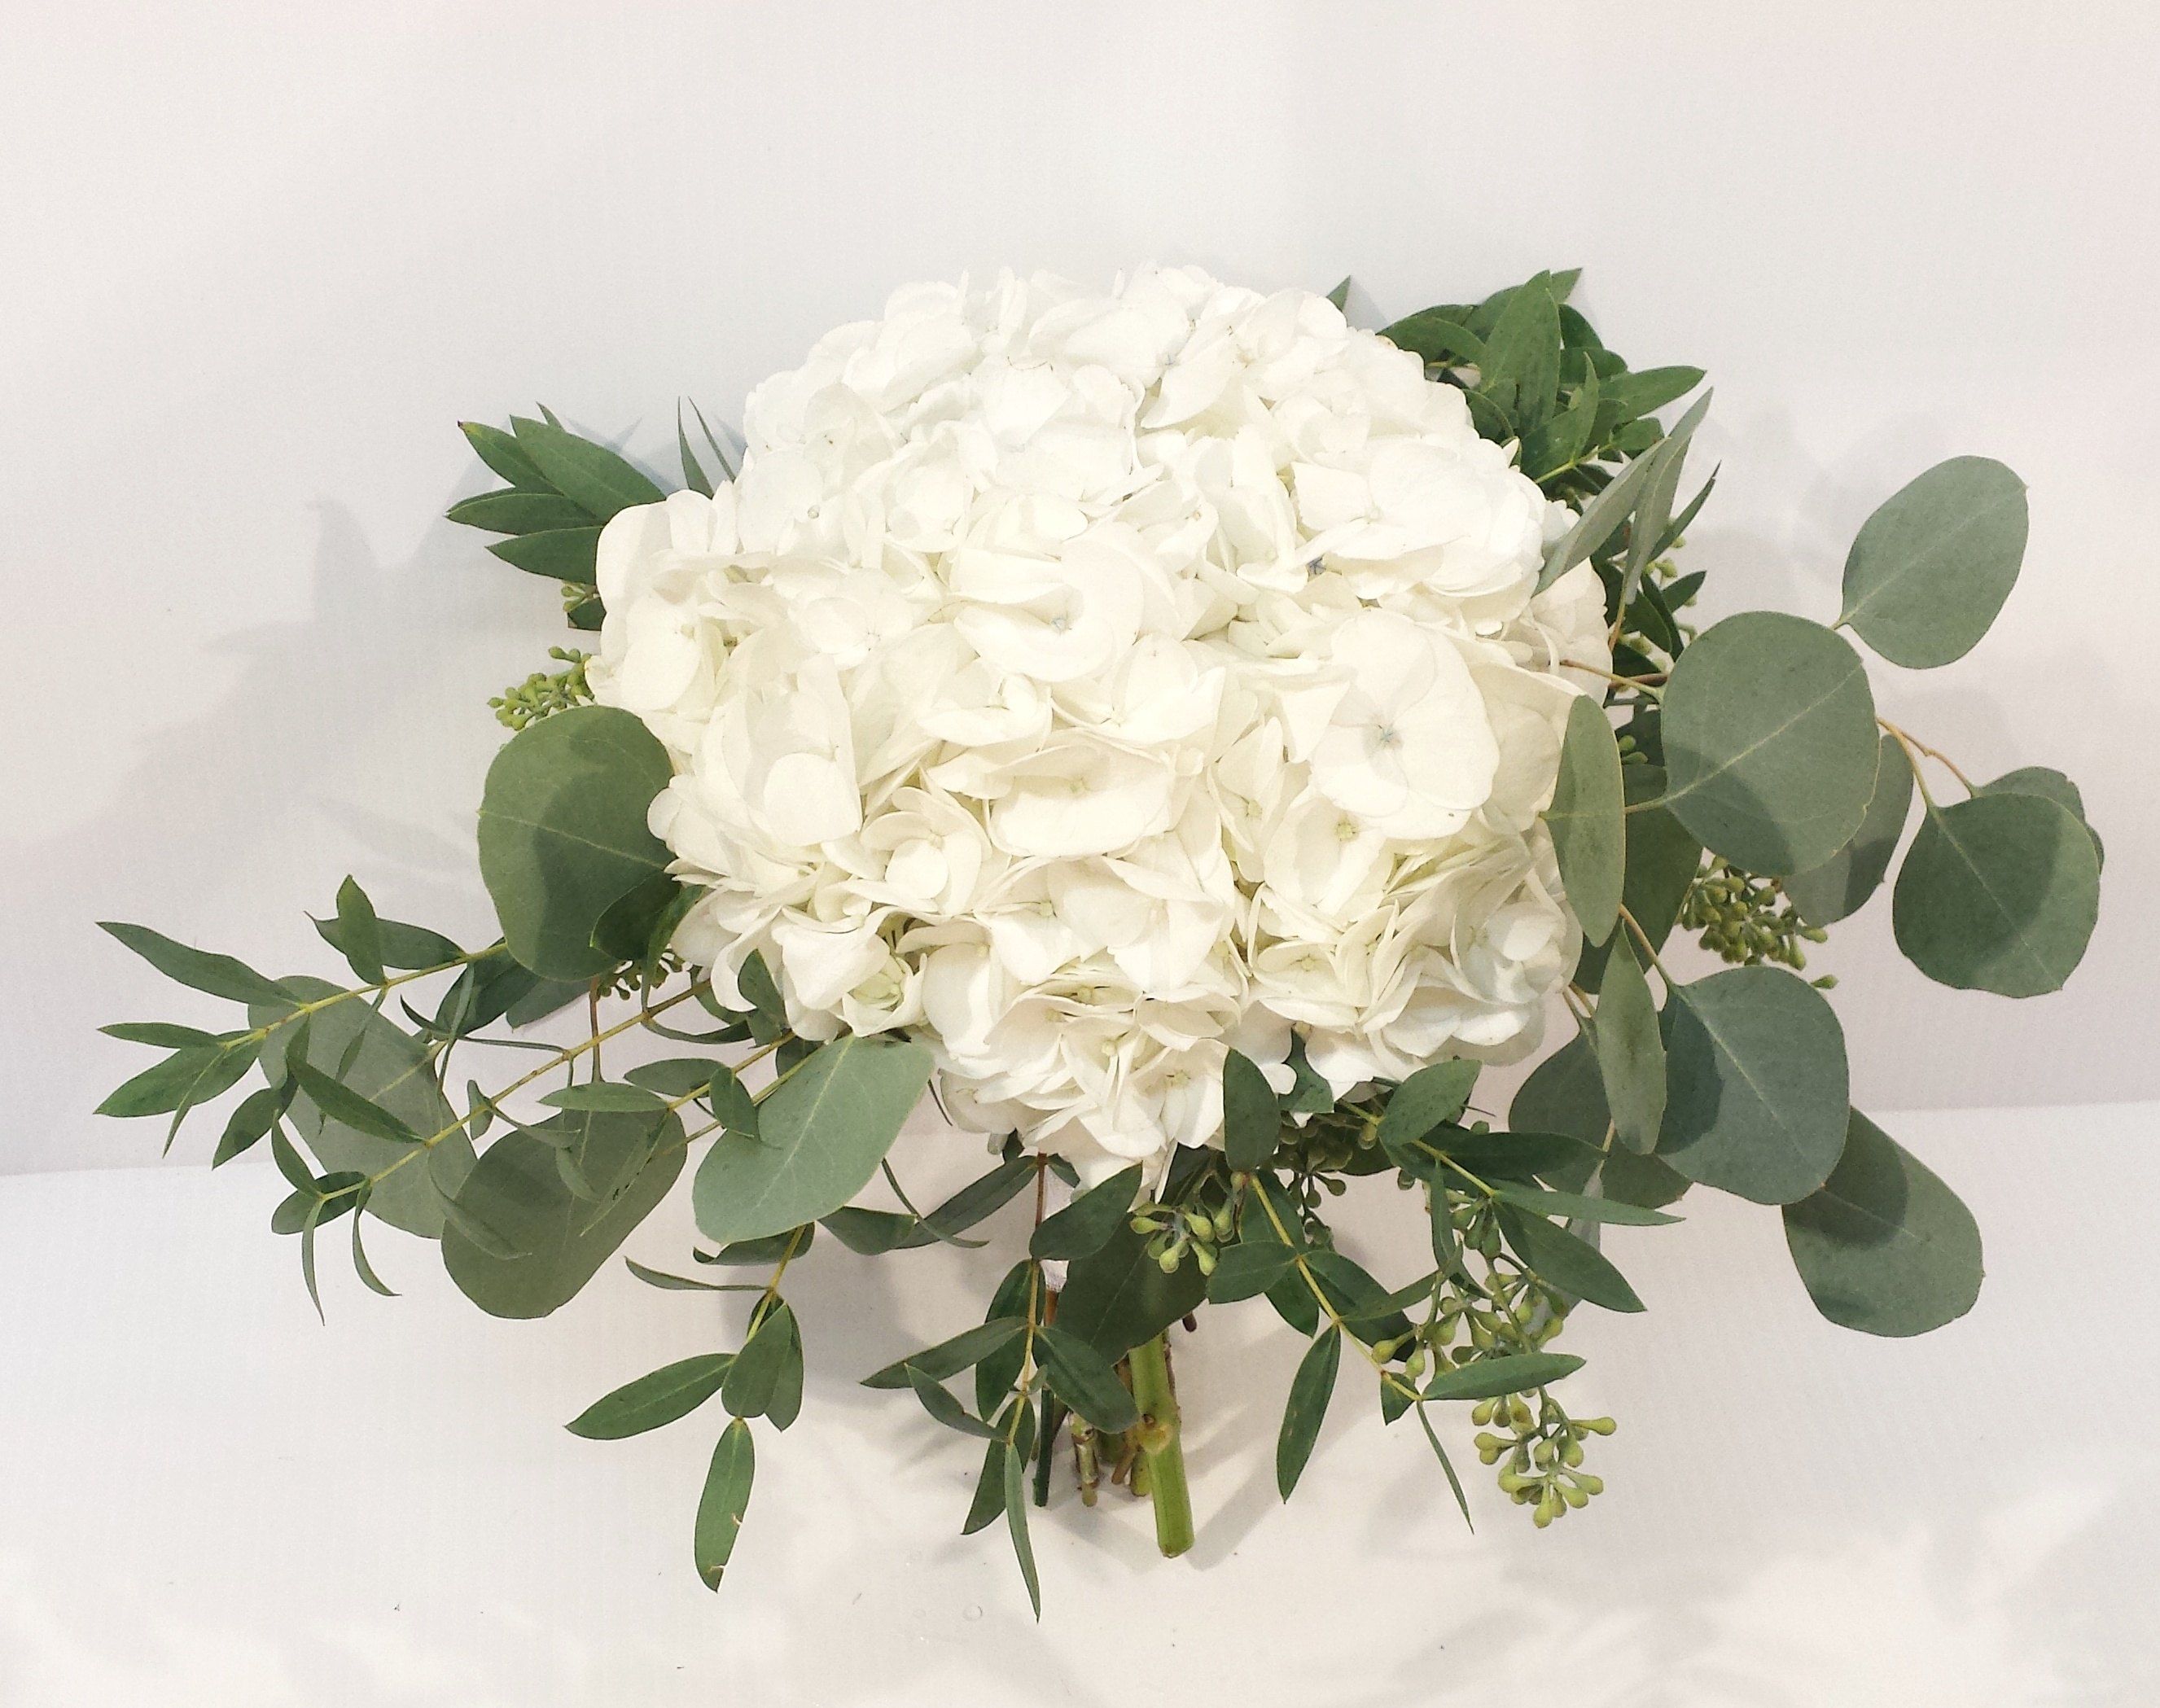 calgary wedding flowers florist dahlia floral design yyc weddings real weddings inspiration bridal bouquet wedding flowers white cream rustic natural garland